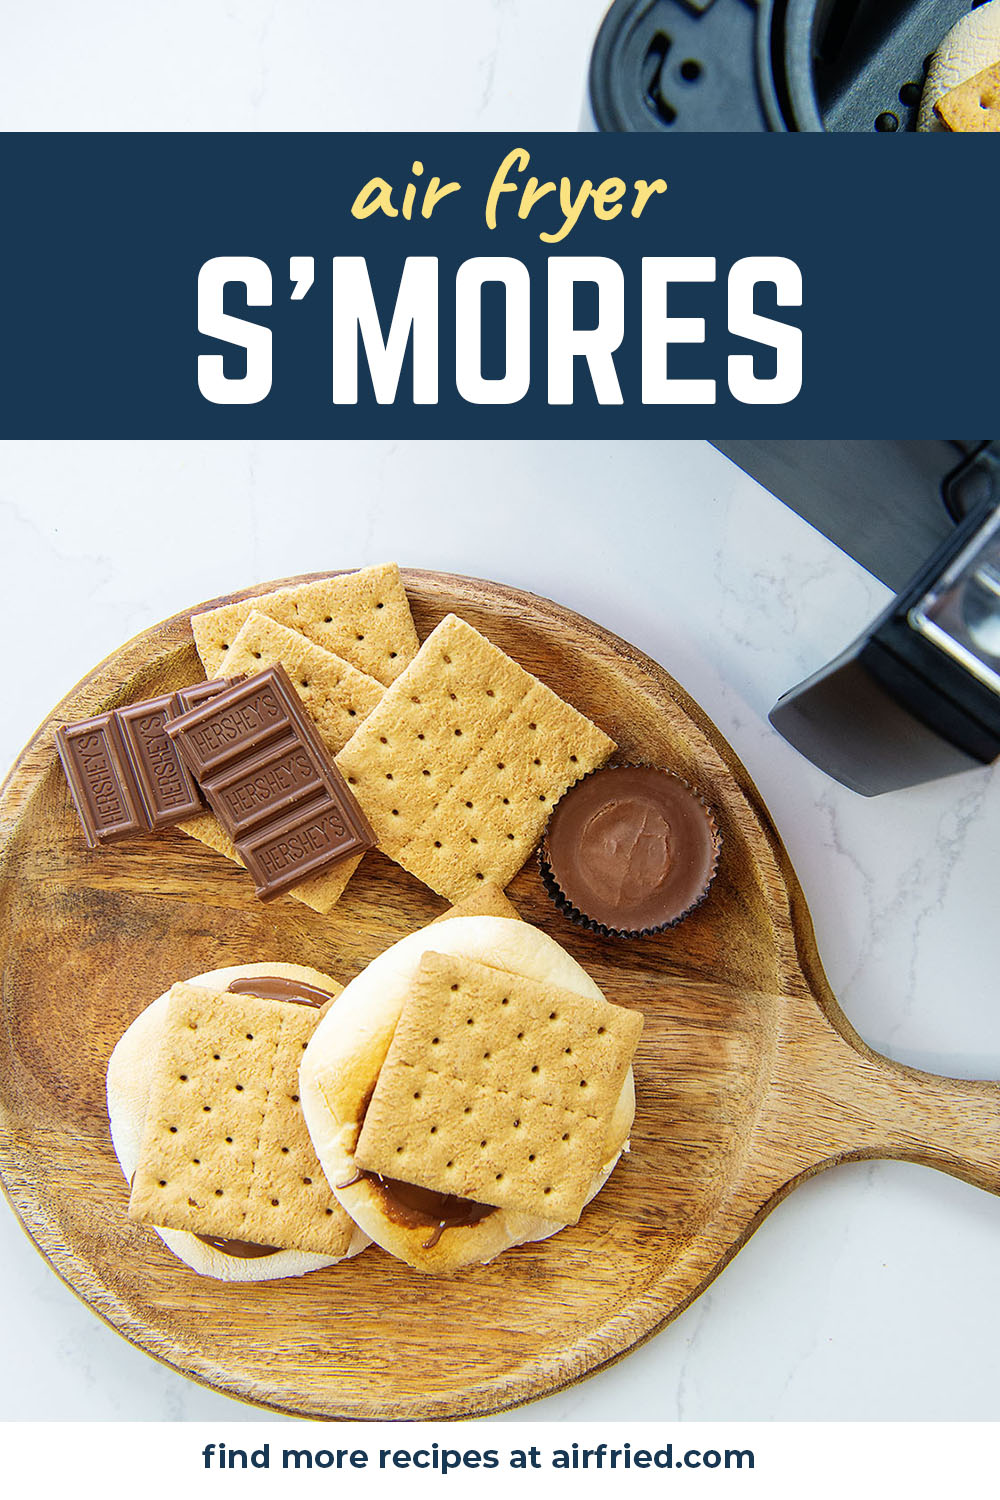 These indoor s'mores are made in the air fryer! We use a mix of Hershey's bars and Reese's for a fun twist on s'mores!